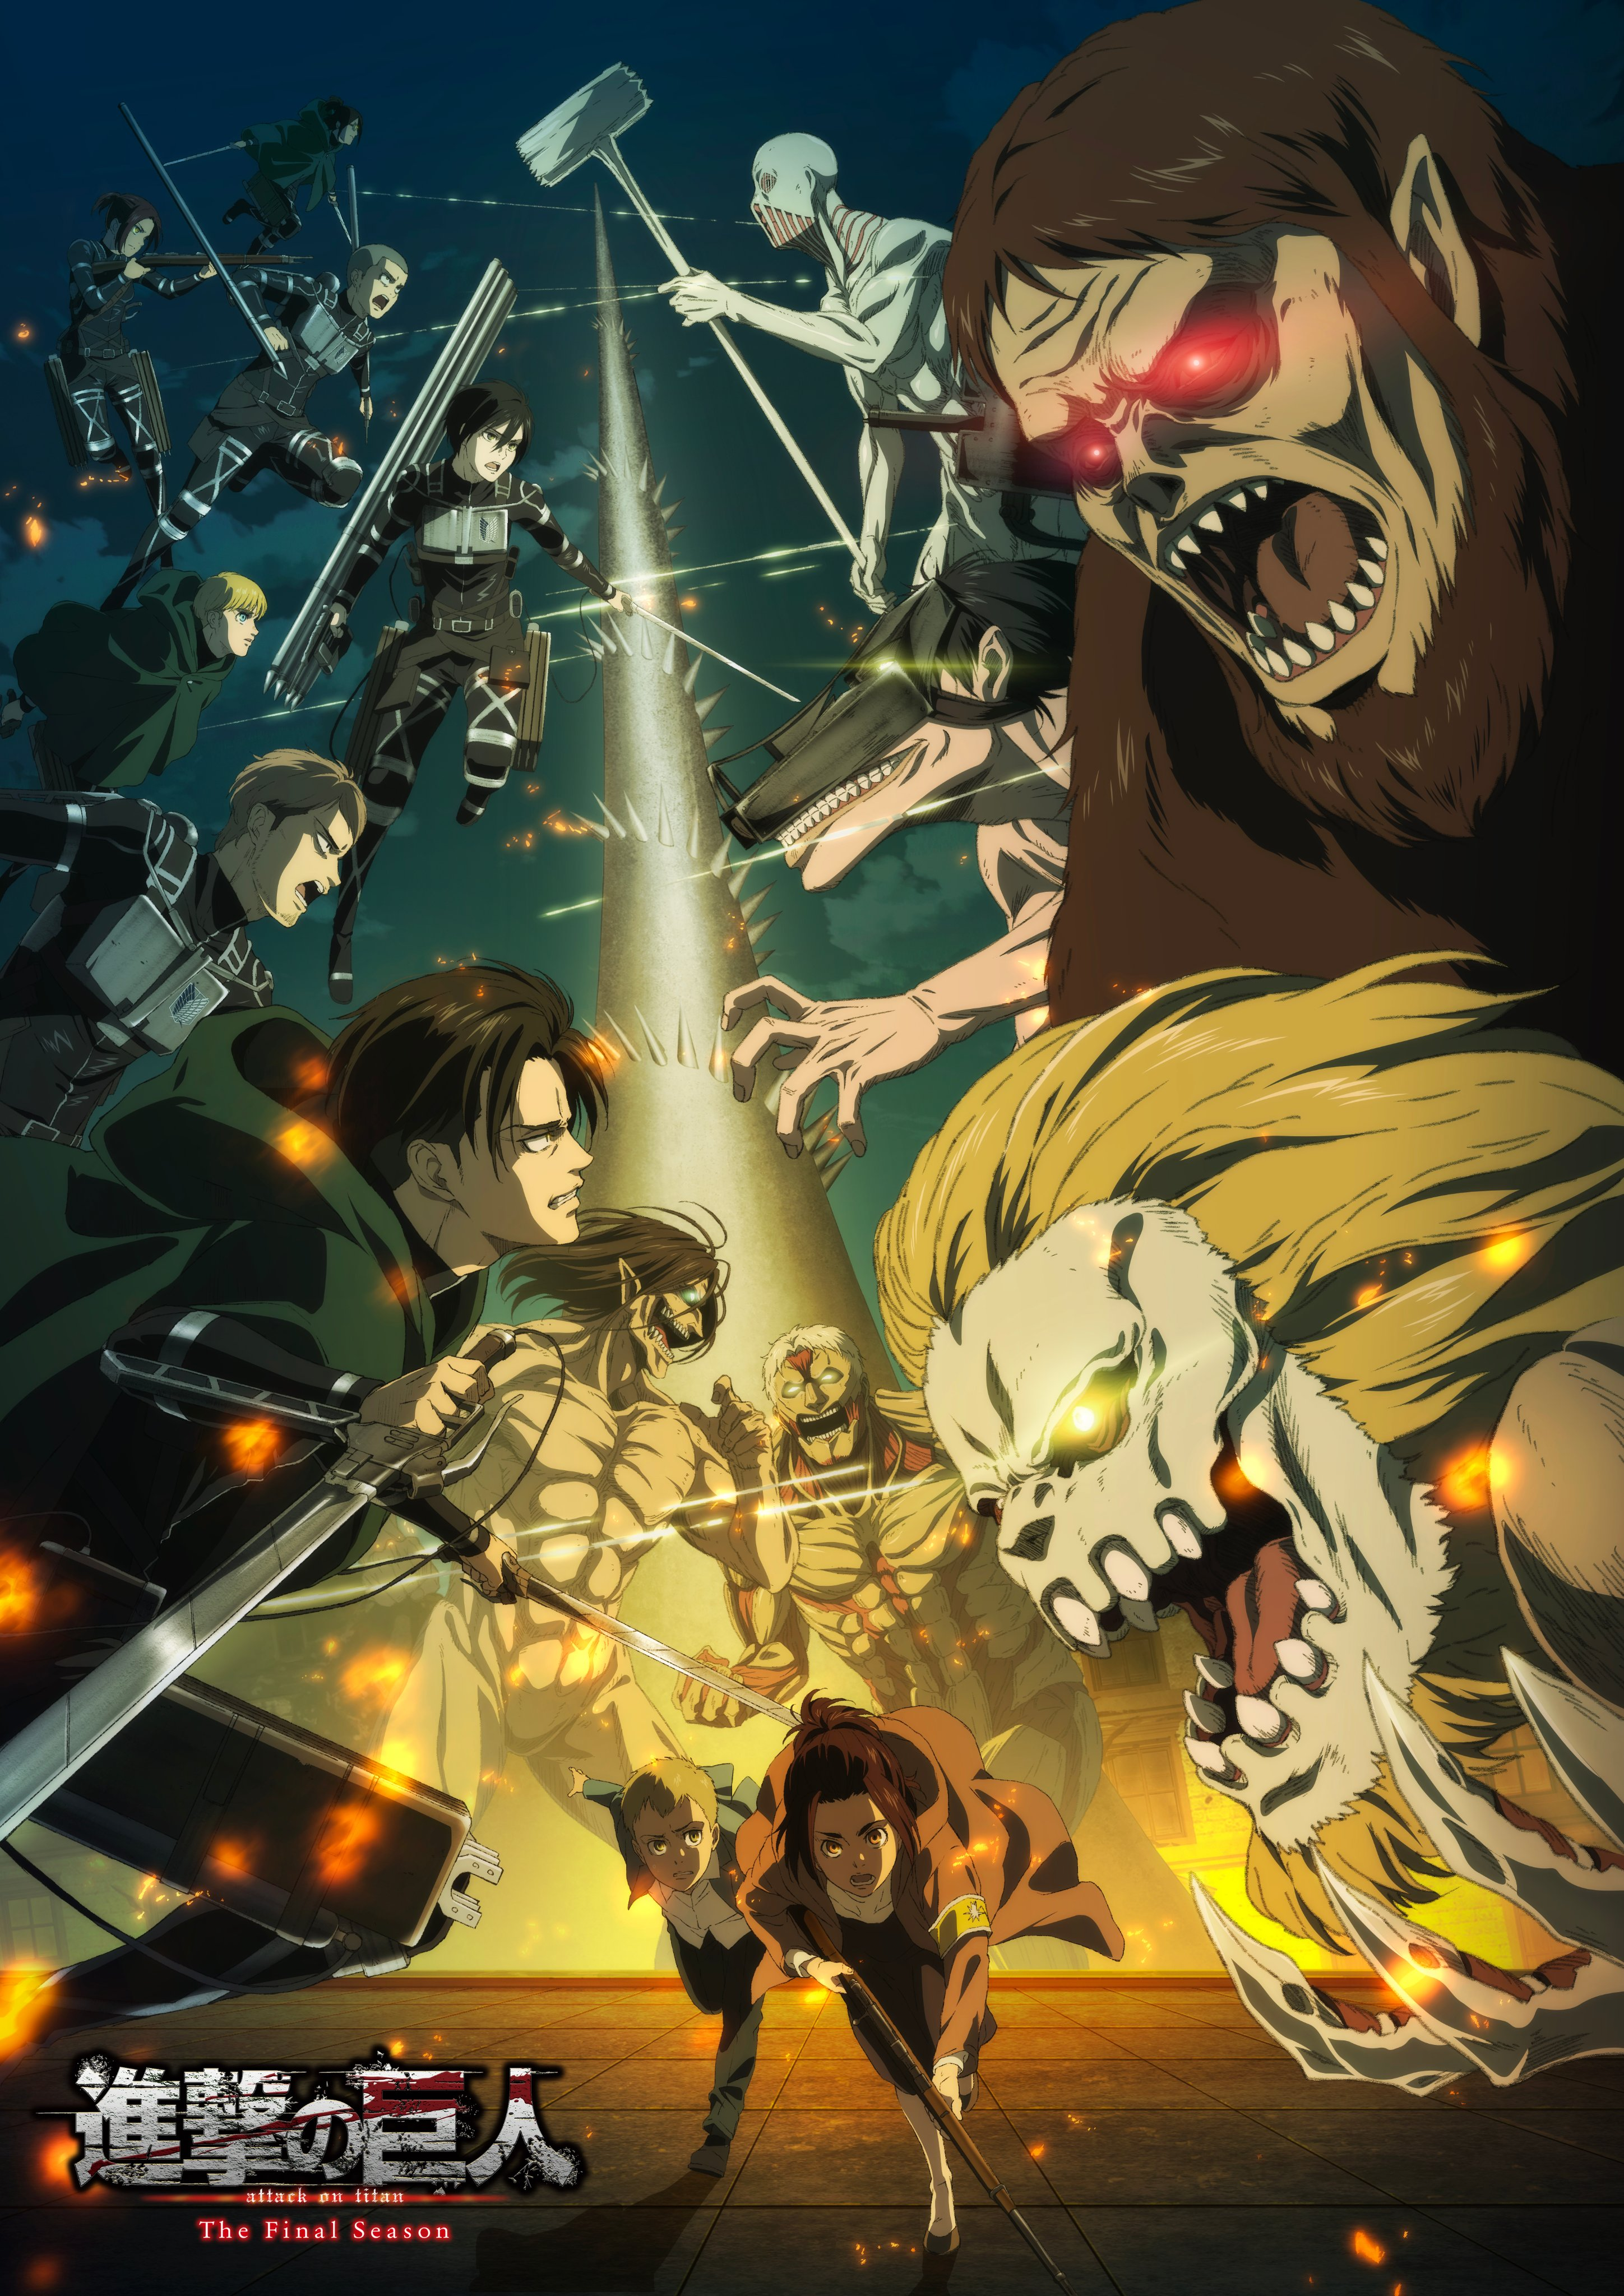 Jaw Titan Attack On Titan Zerochan Anime Image Board